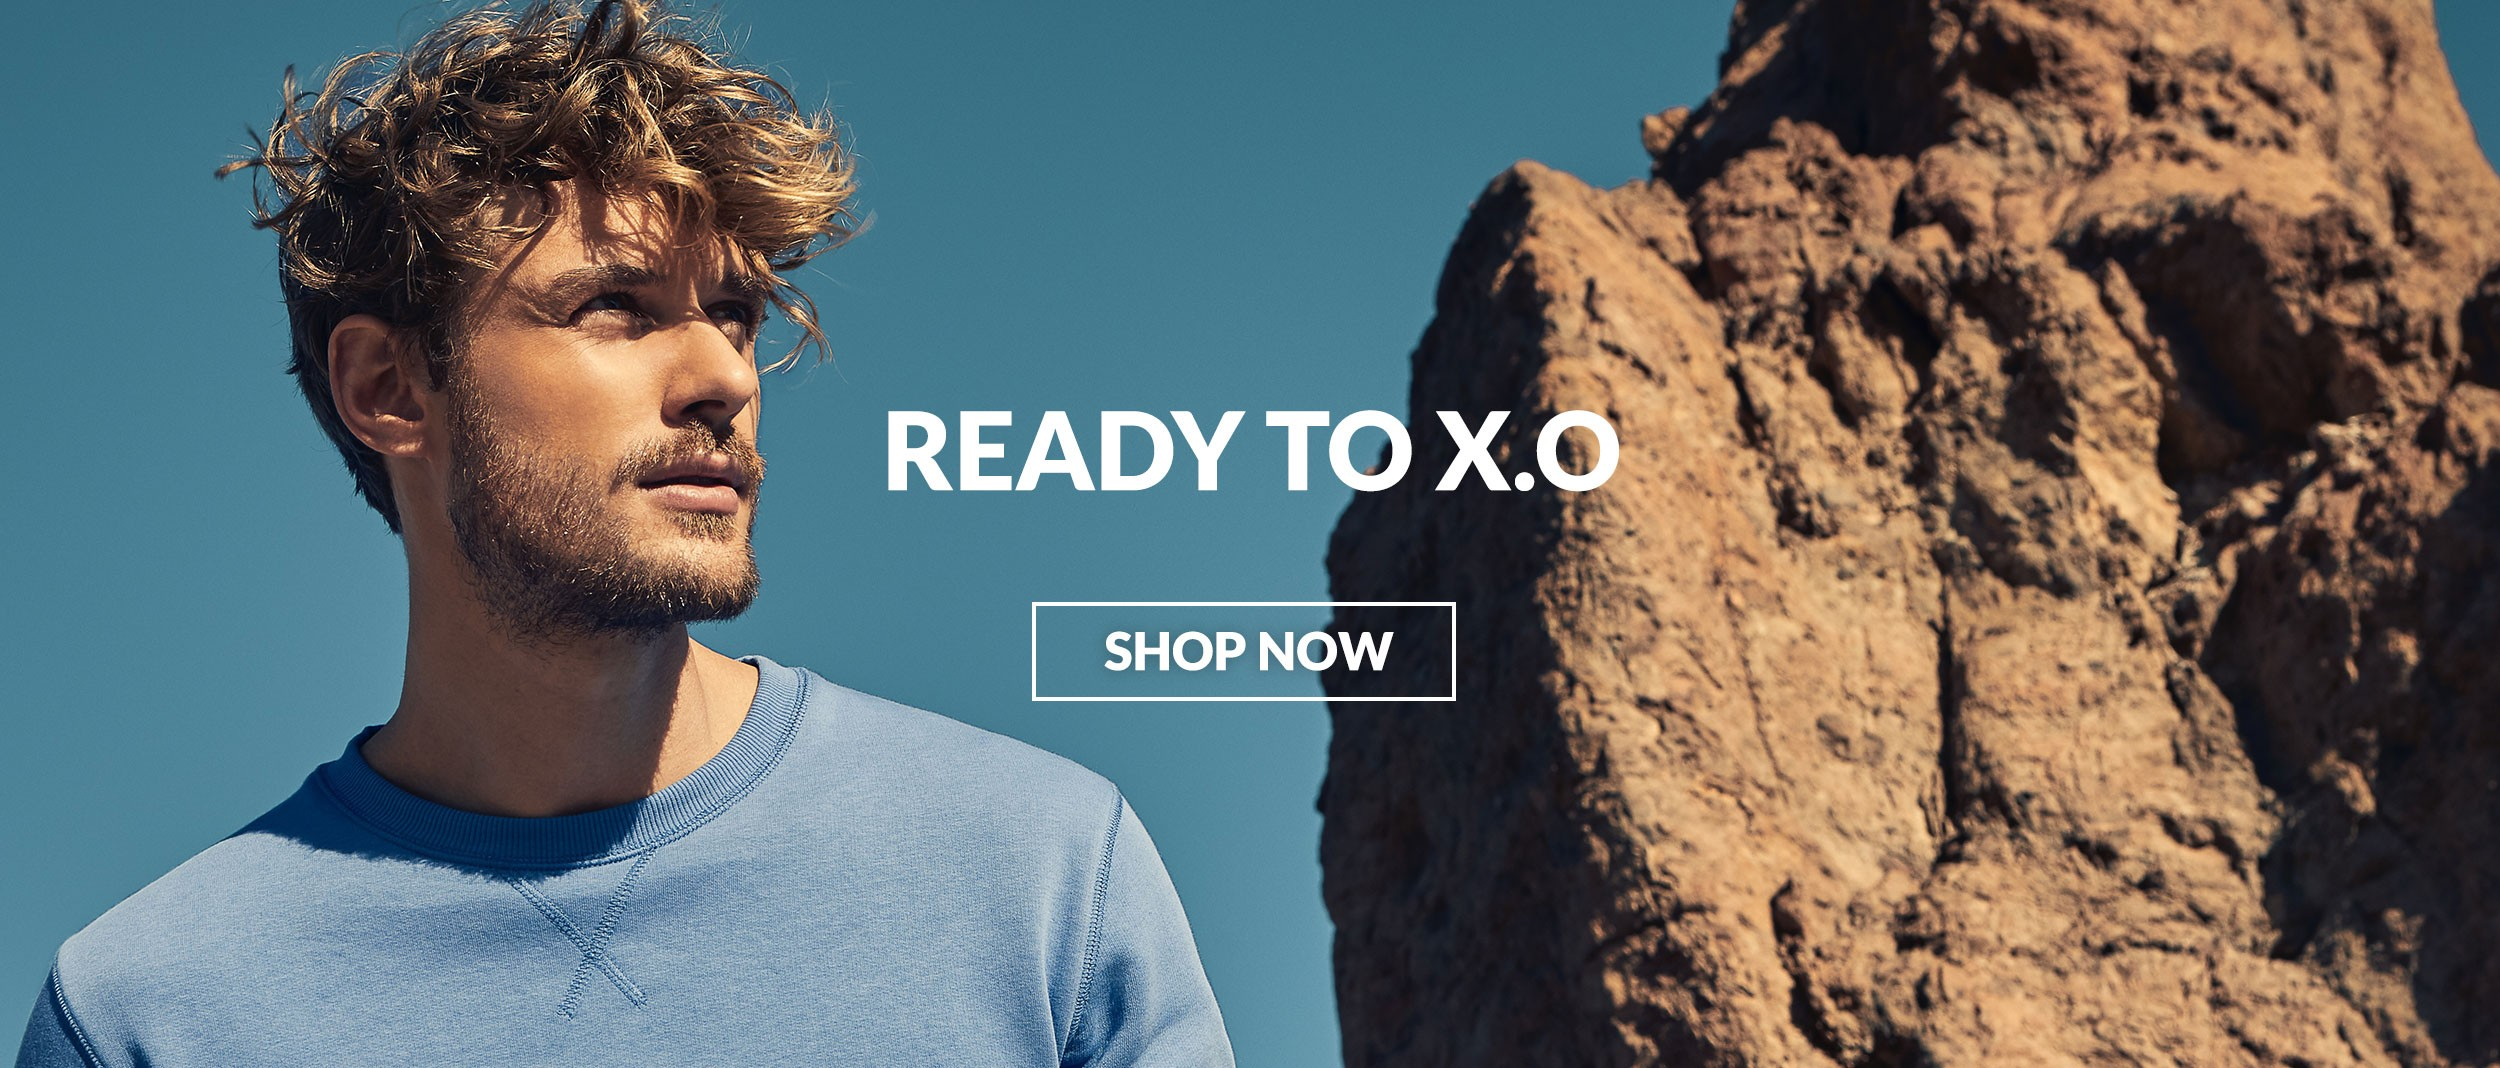 Shop now our X.O collection